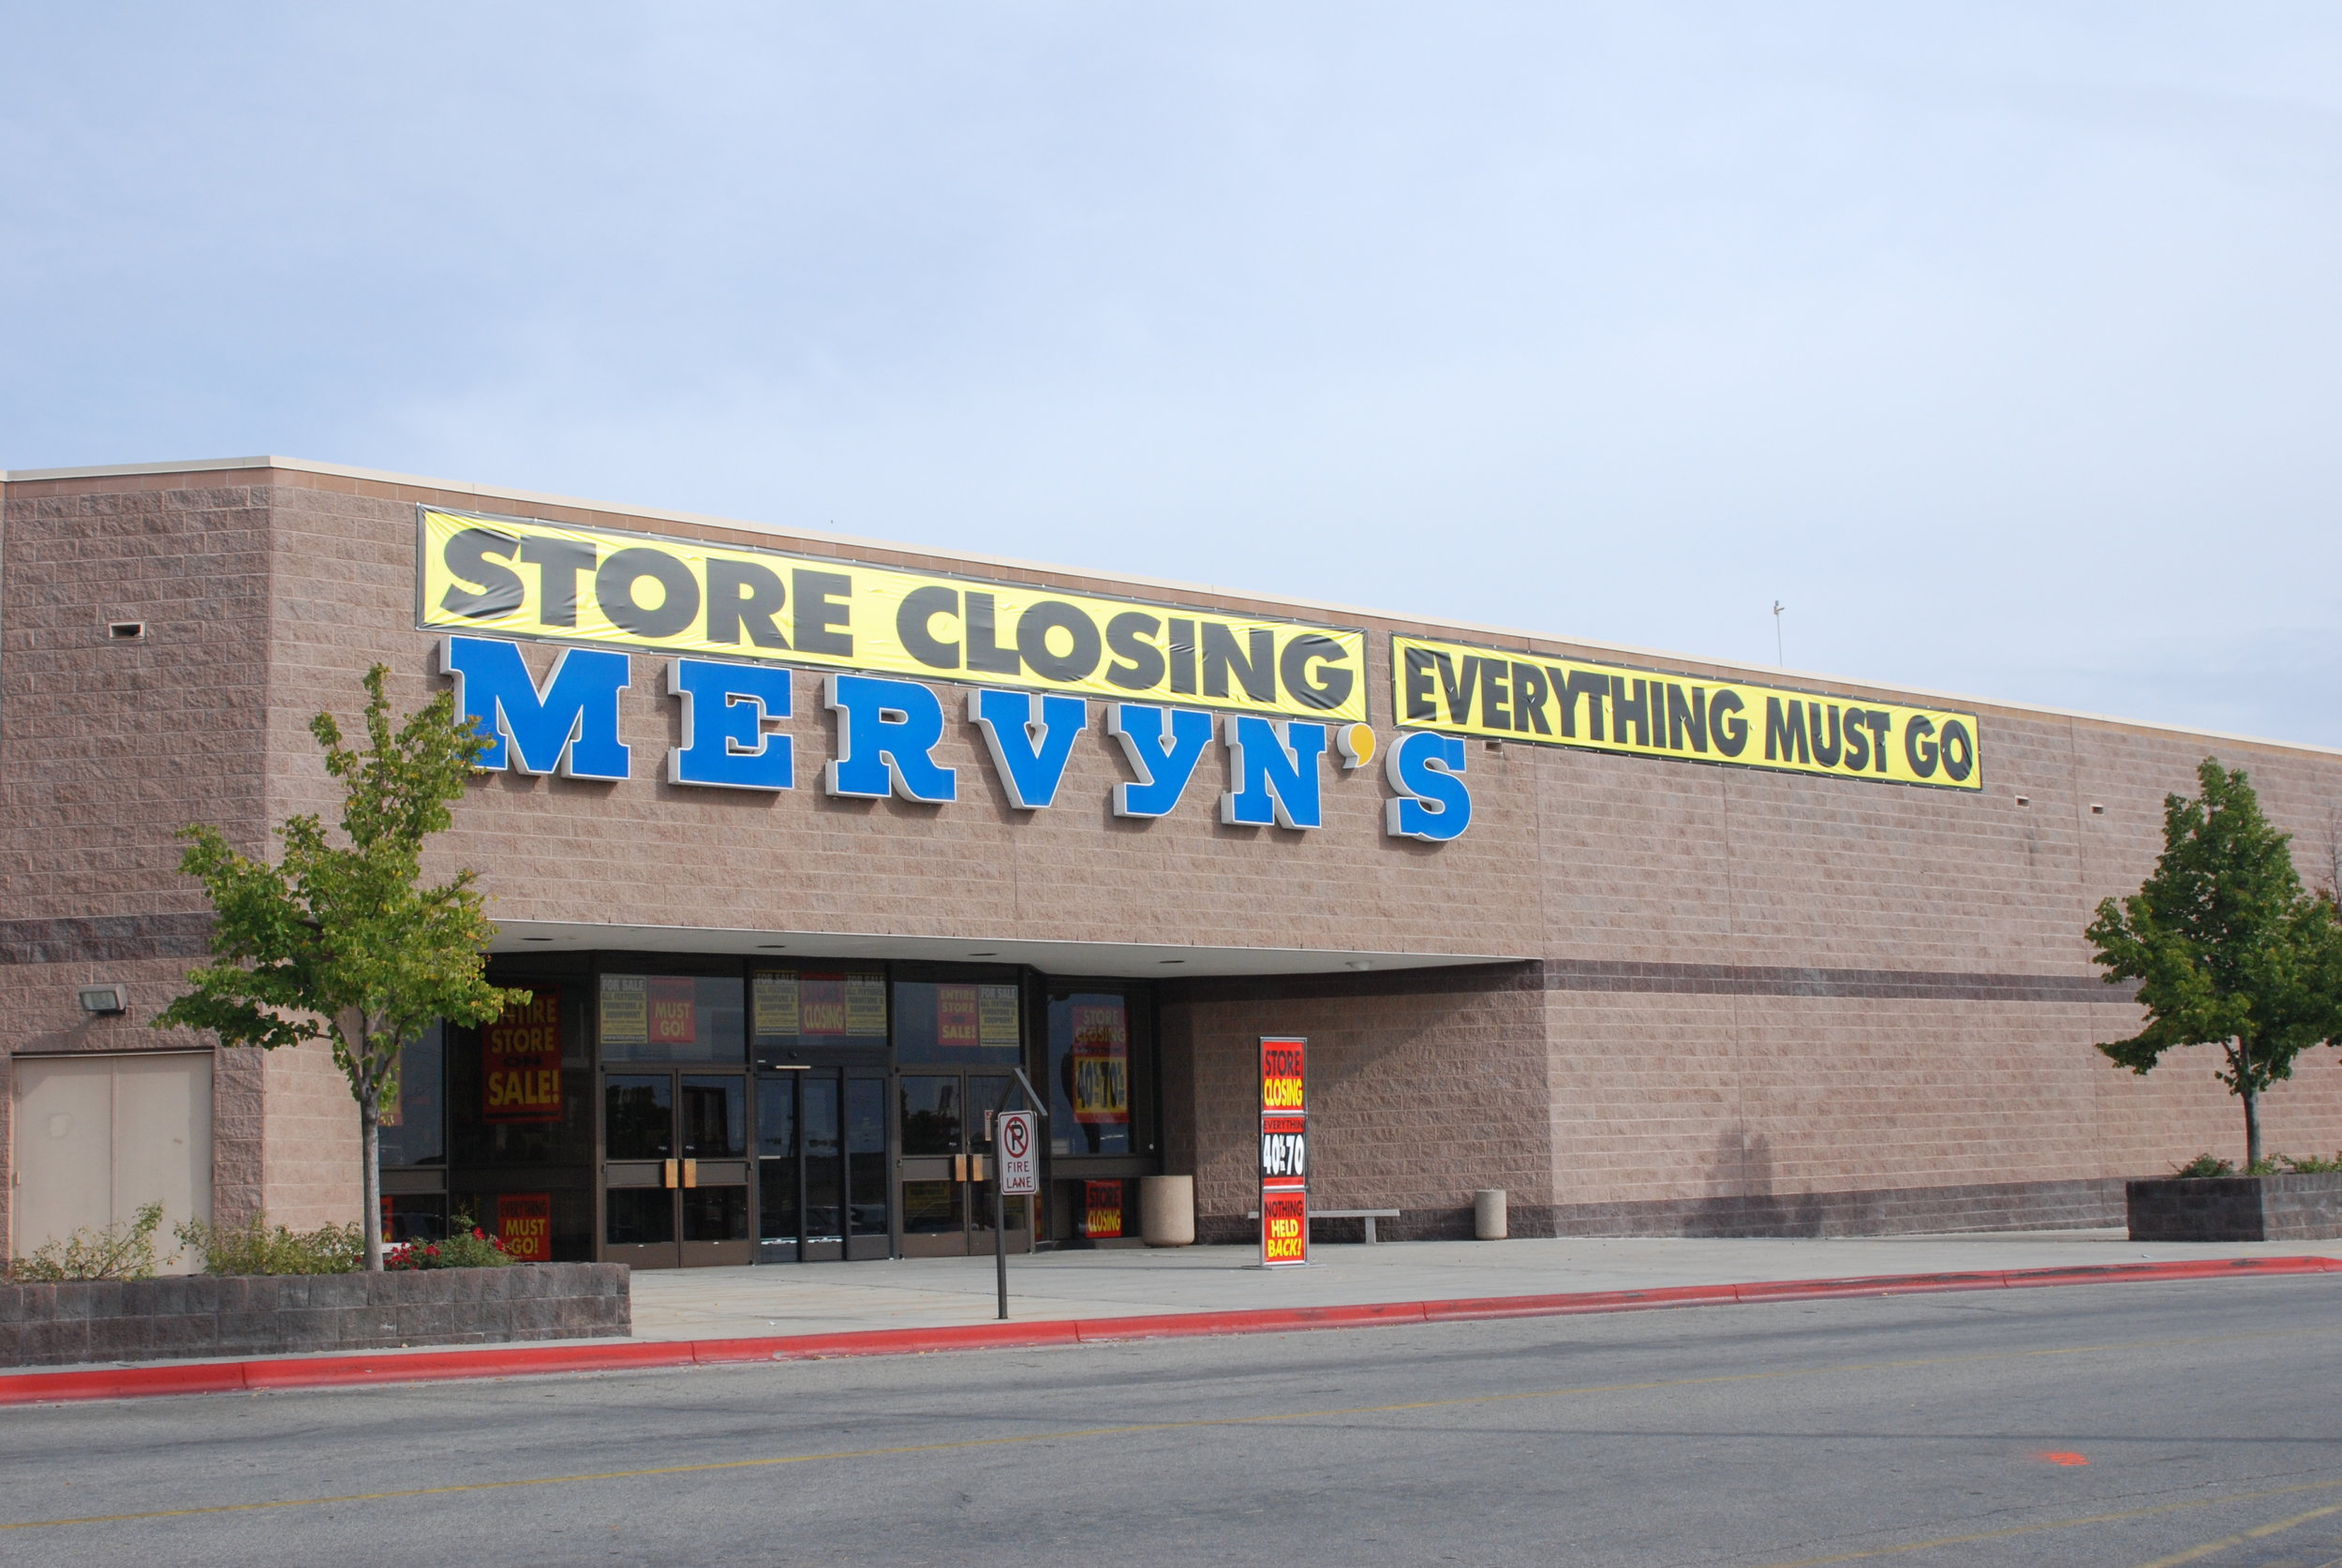 The Boise Mervyn's store closed along with the rest of the chain. It was replaced by Kohl's. Photo:  Caldorwards4  via Wikimedia Commons.